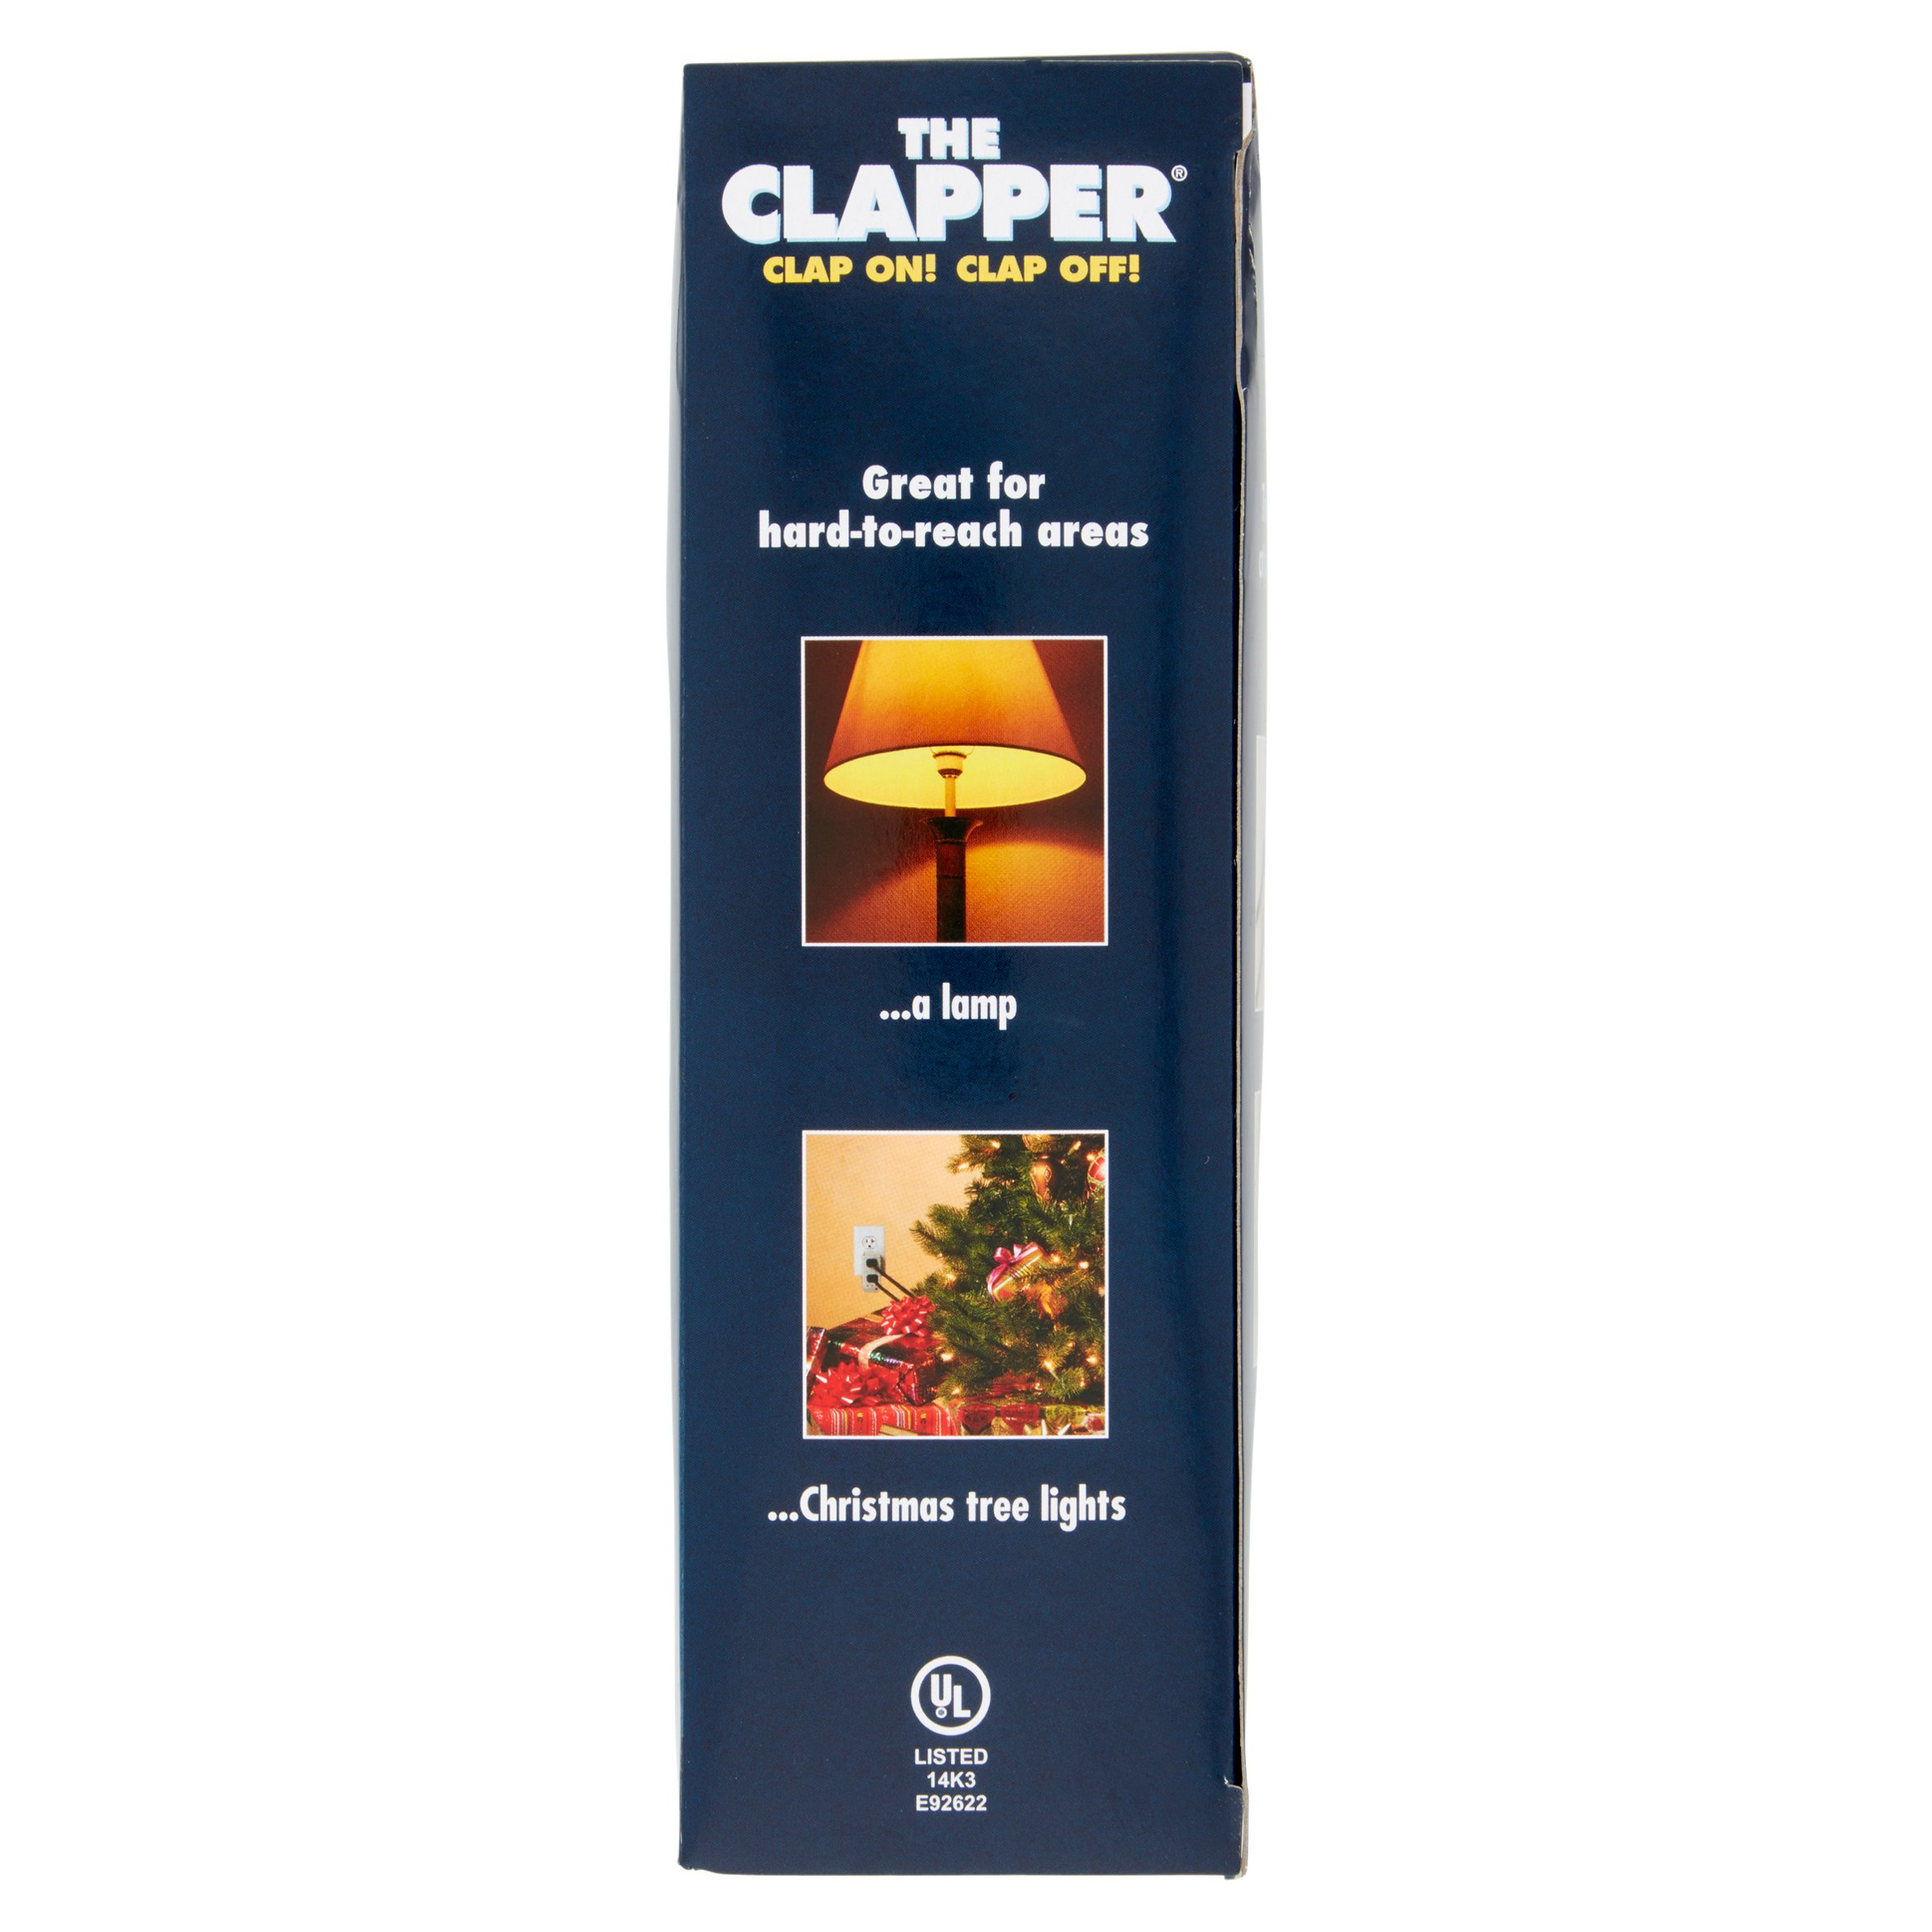 The Clapper Wireless Sound Activated On Off Switch Clap Detection Automatic Light